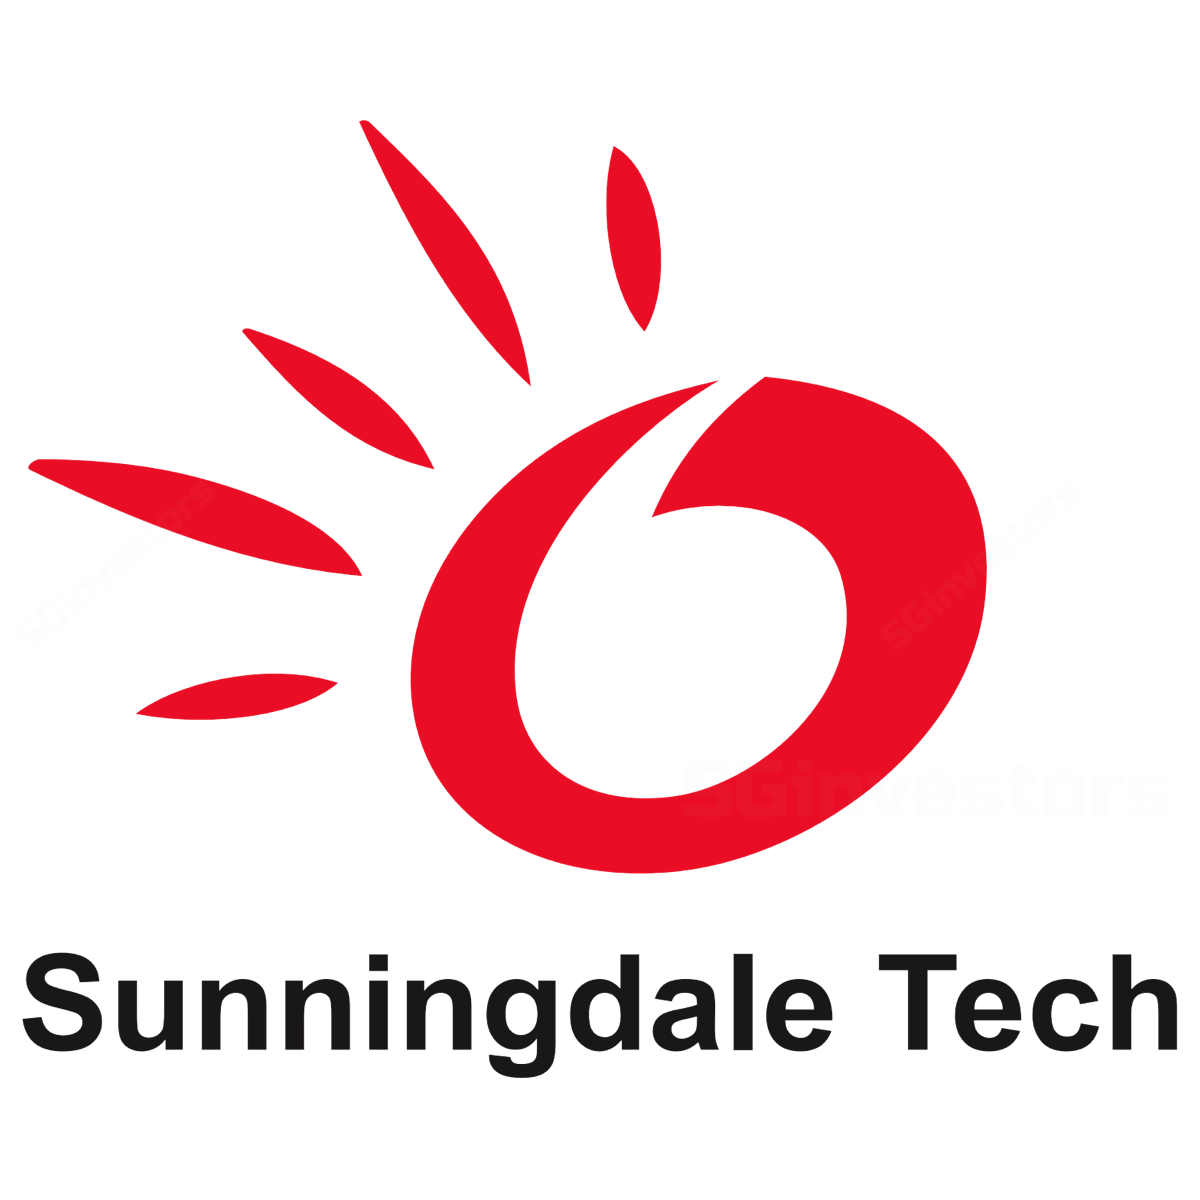 Sunningdale Tech Ltd - CGS-CIMB Research 2018-08-08: Watching Gross Margin Trend